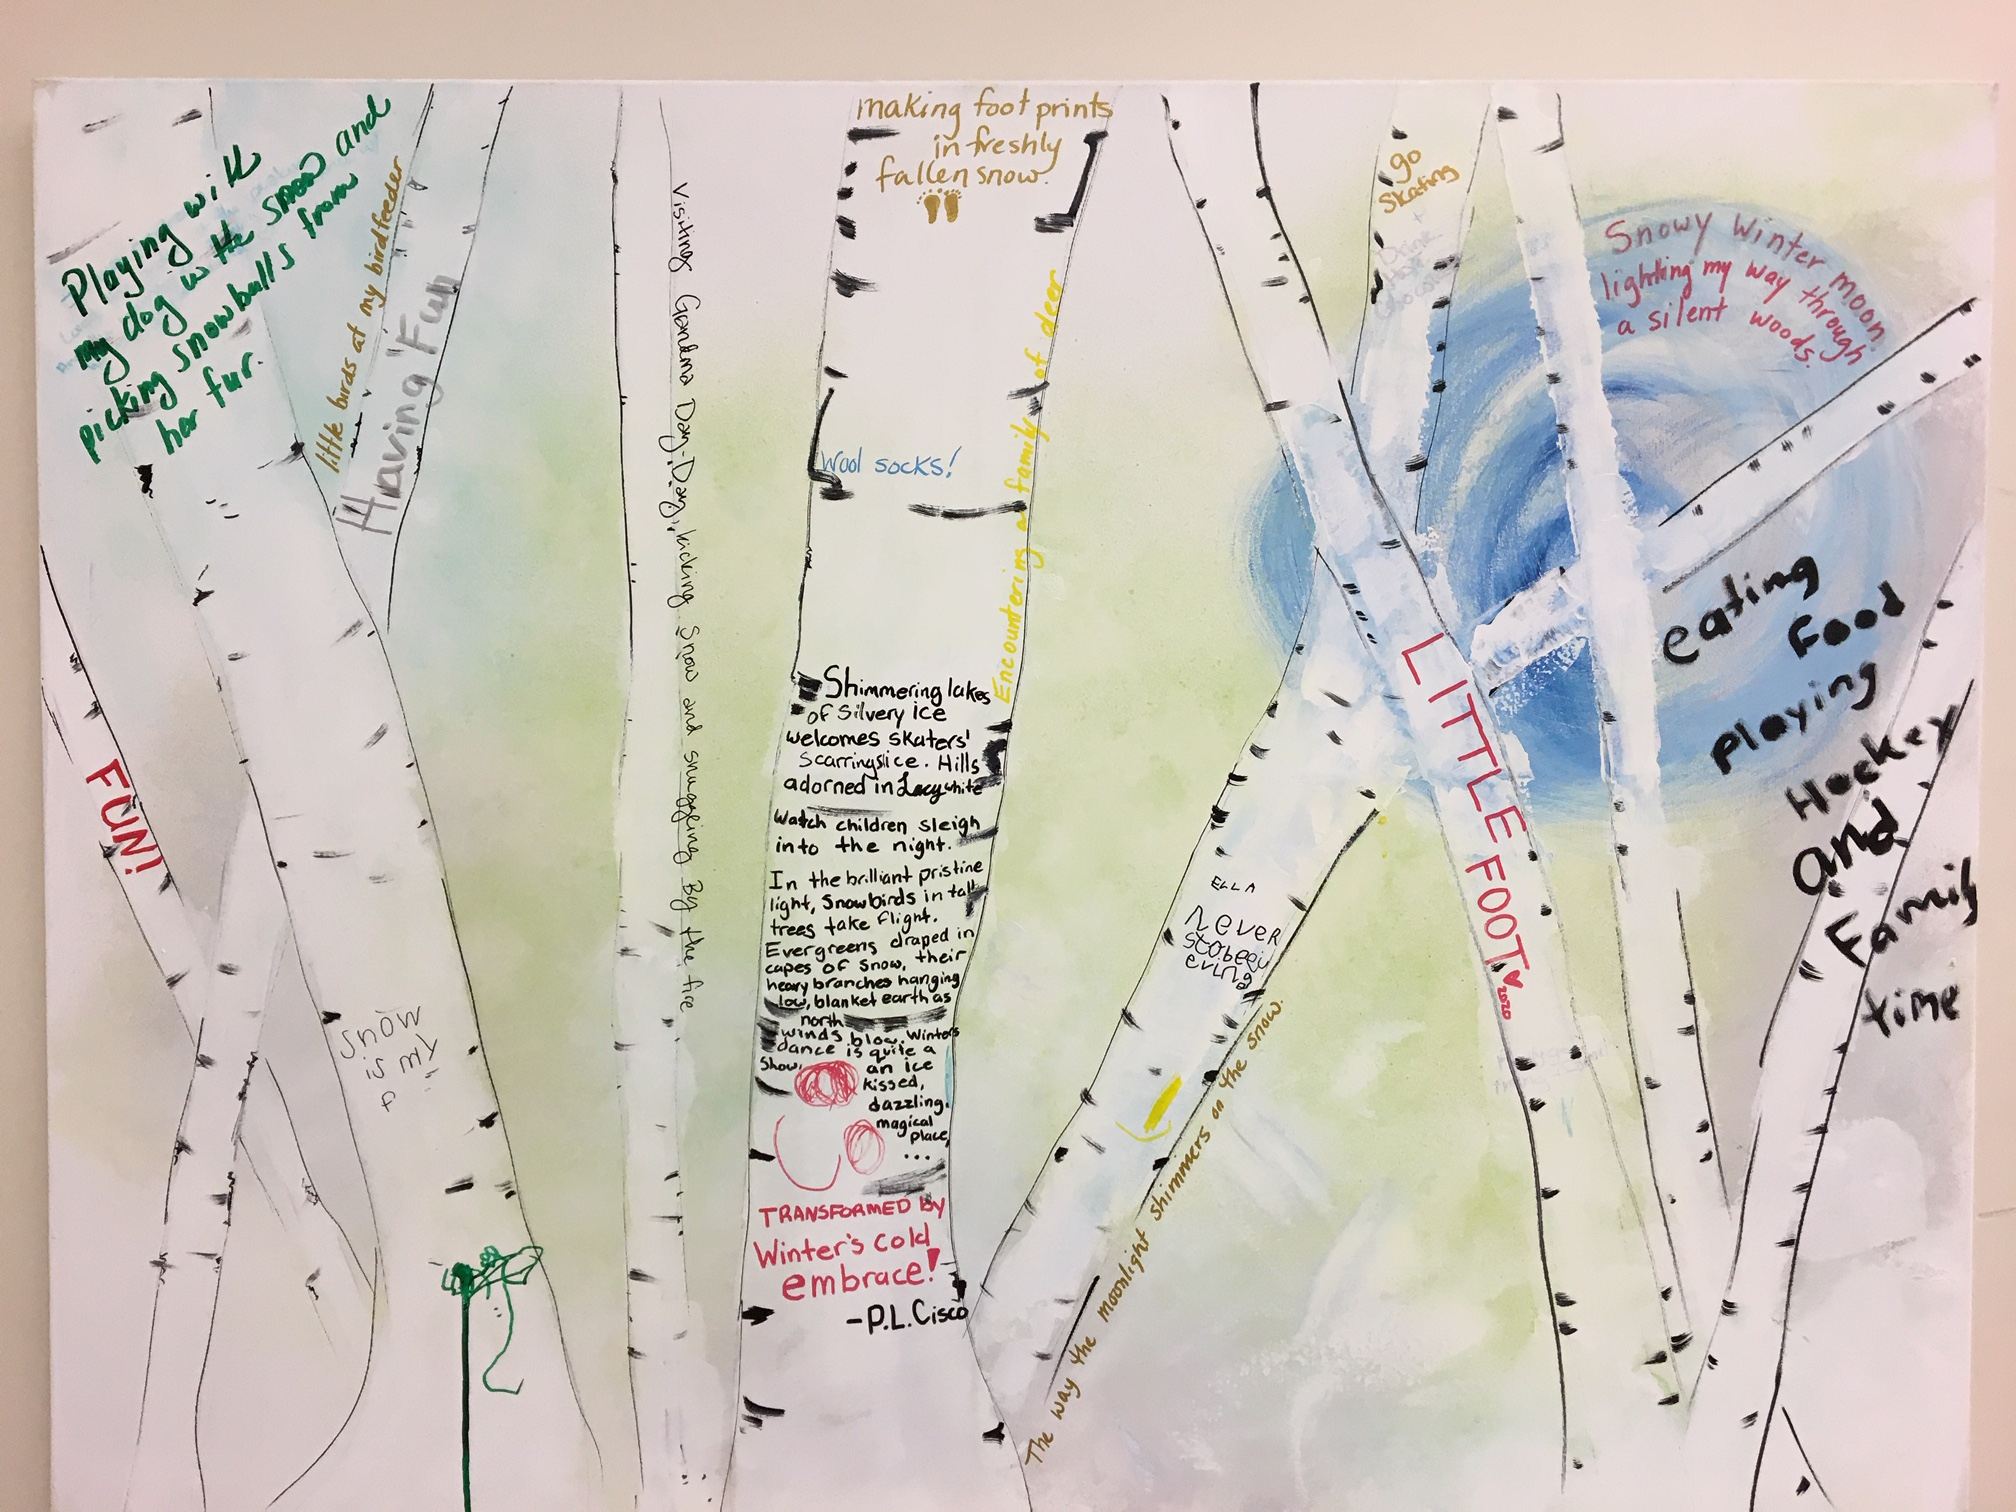 Words and sentences about winter by participants at the Art of Winter Festival